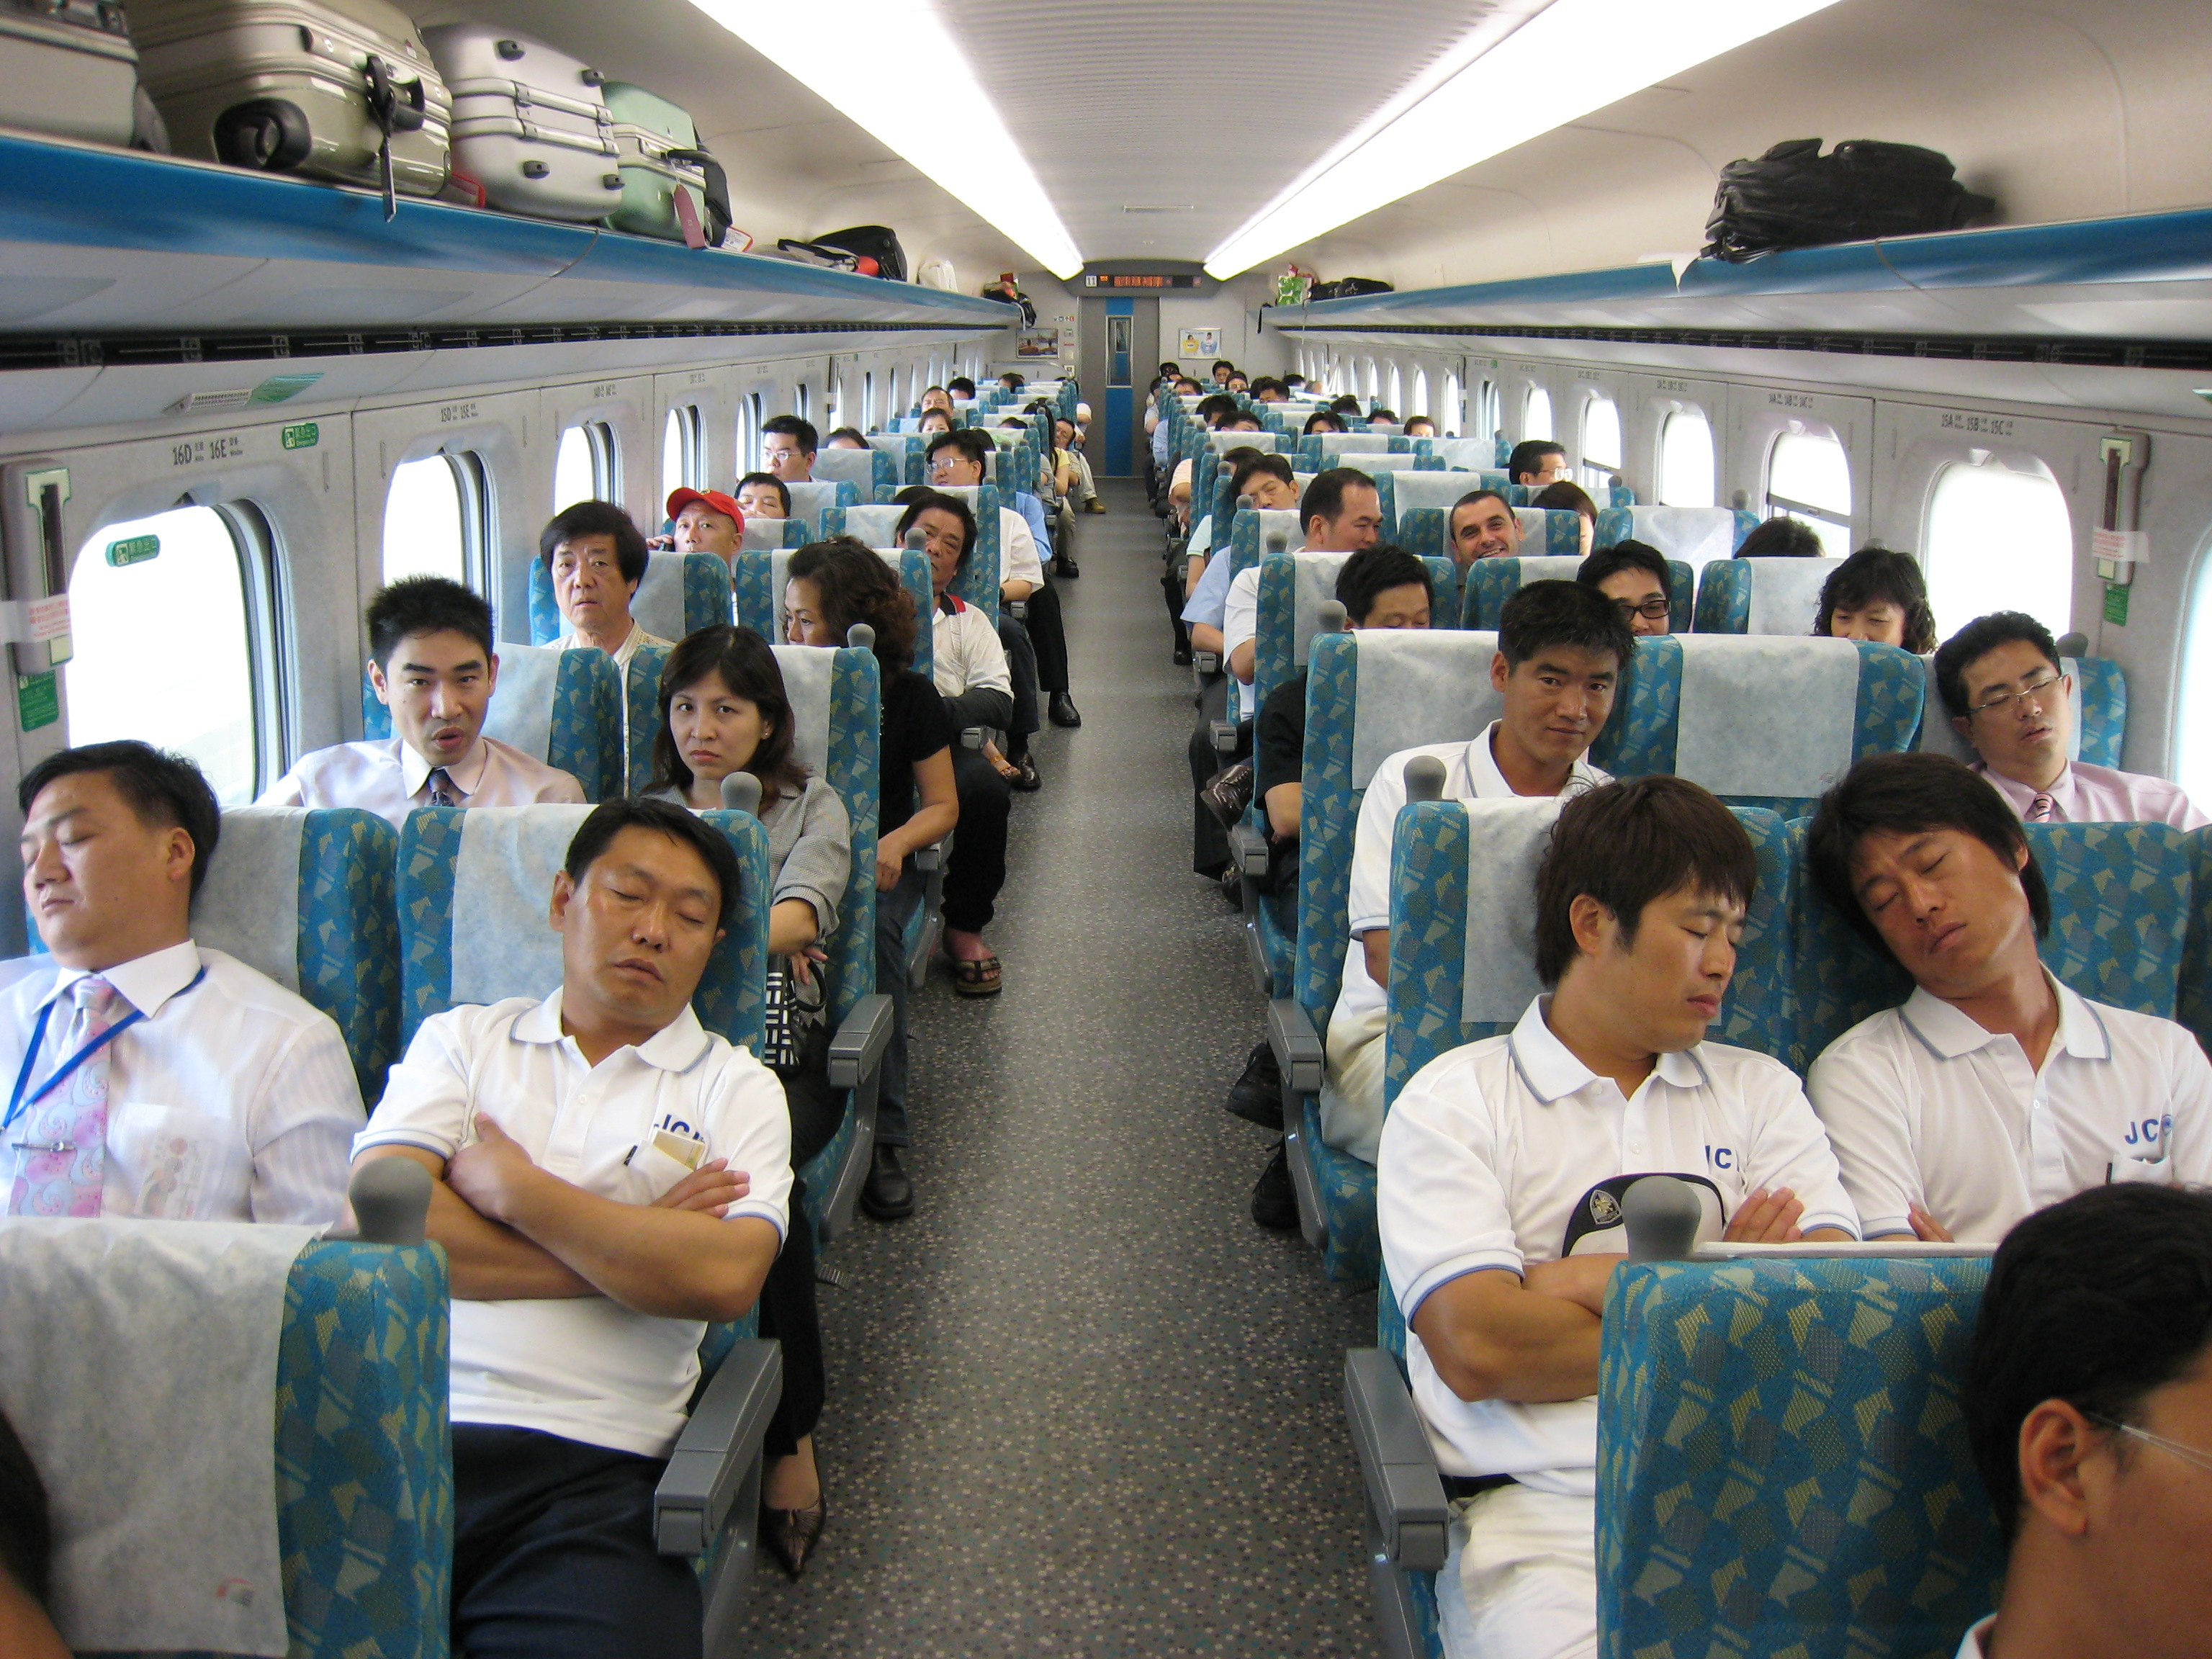 Description taiwan high speed rail 0296 jpg